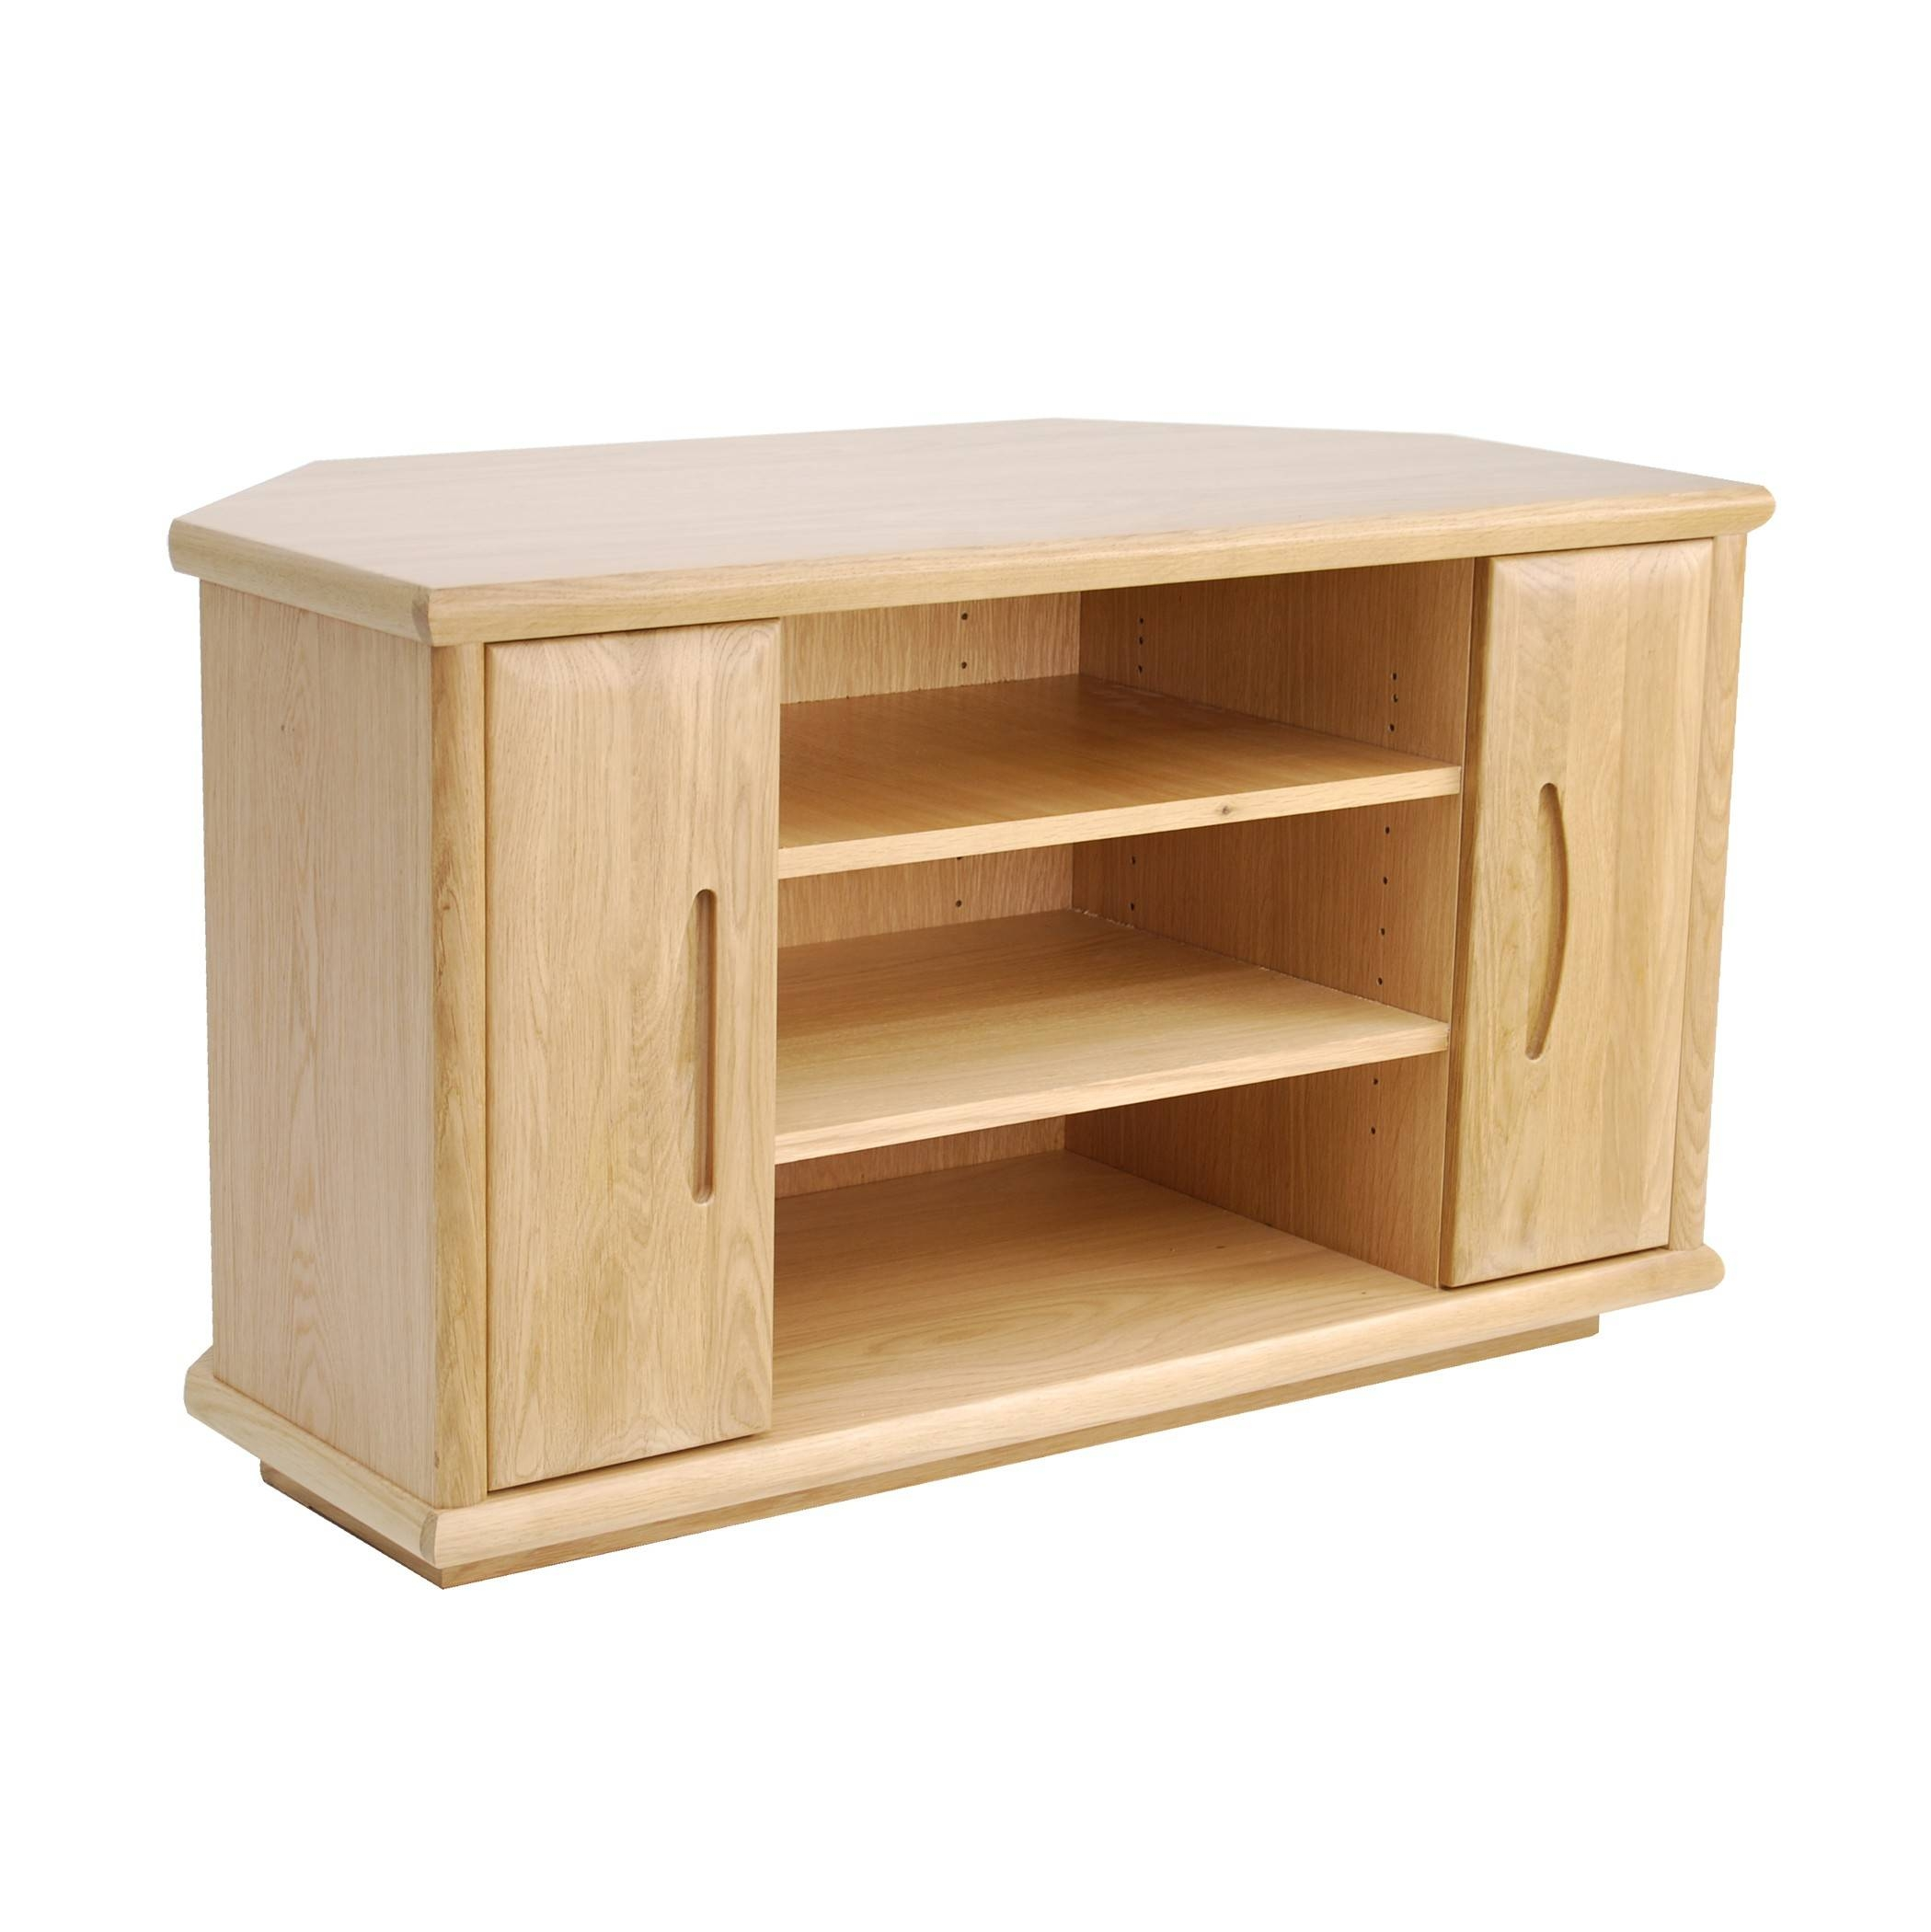 Oak Corner Tv Stand | Gola Furniture Uk regarding Small Oak Corner Tv Stands (Image 7 of 15)